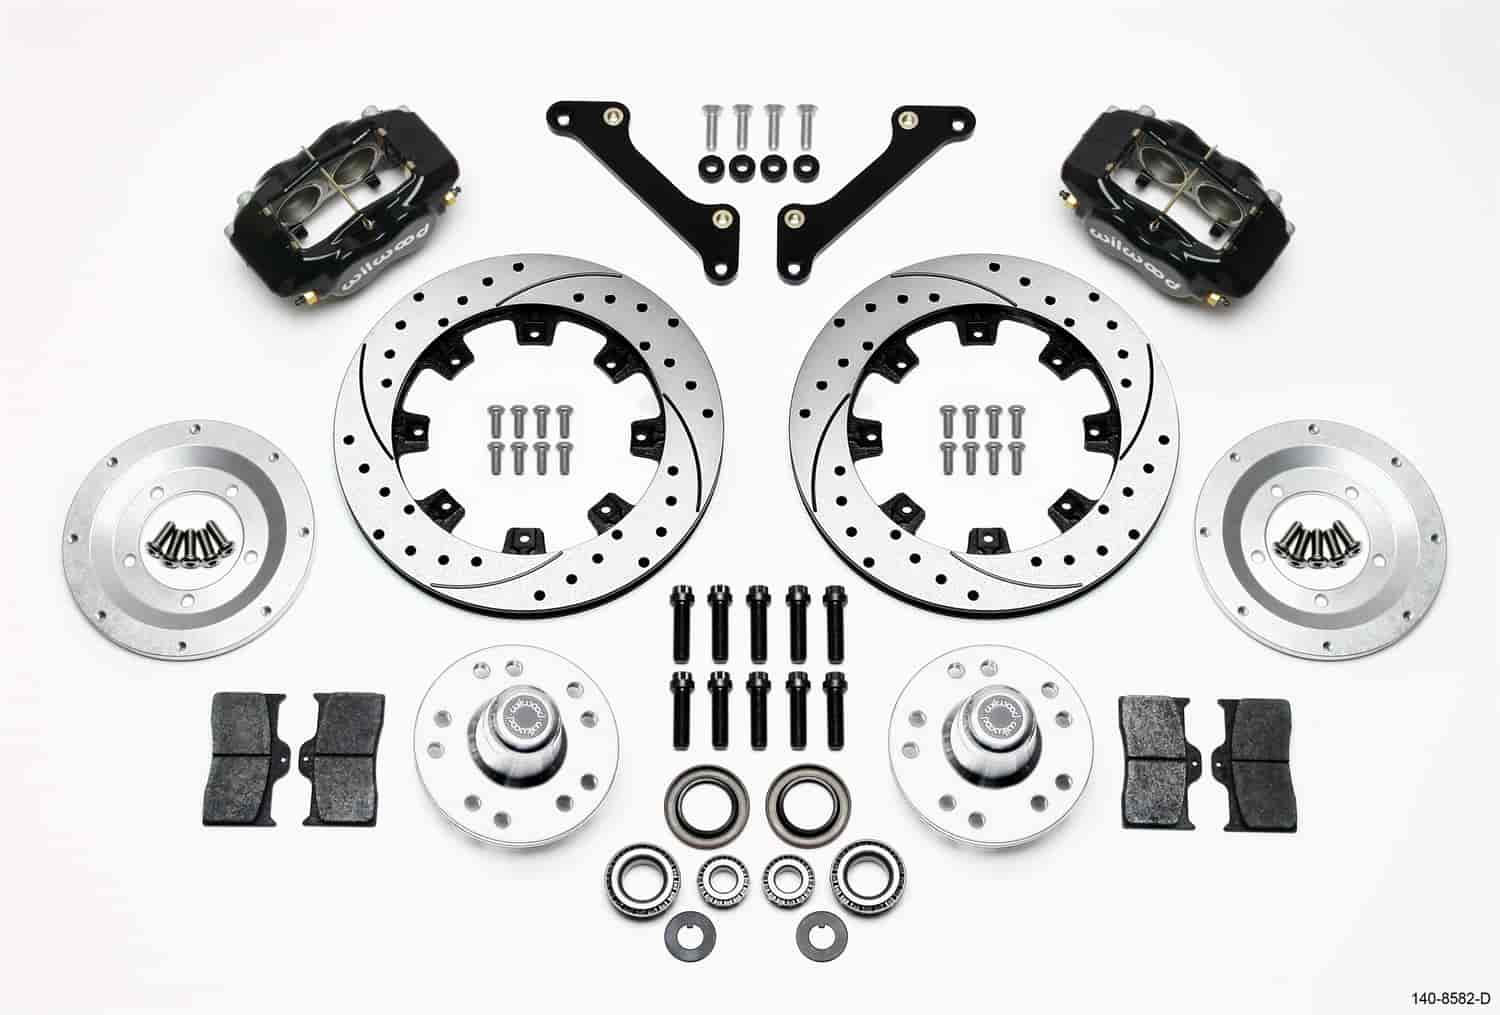 Wilwood 140-8582-D - Wilwood Dynalite Big Brake Front Hub Kits